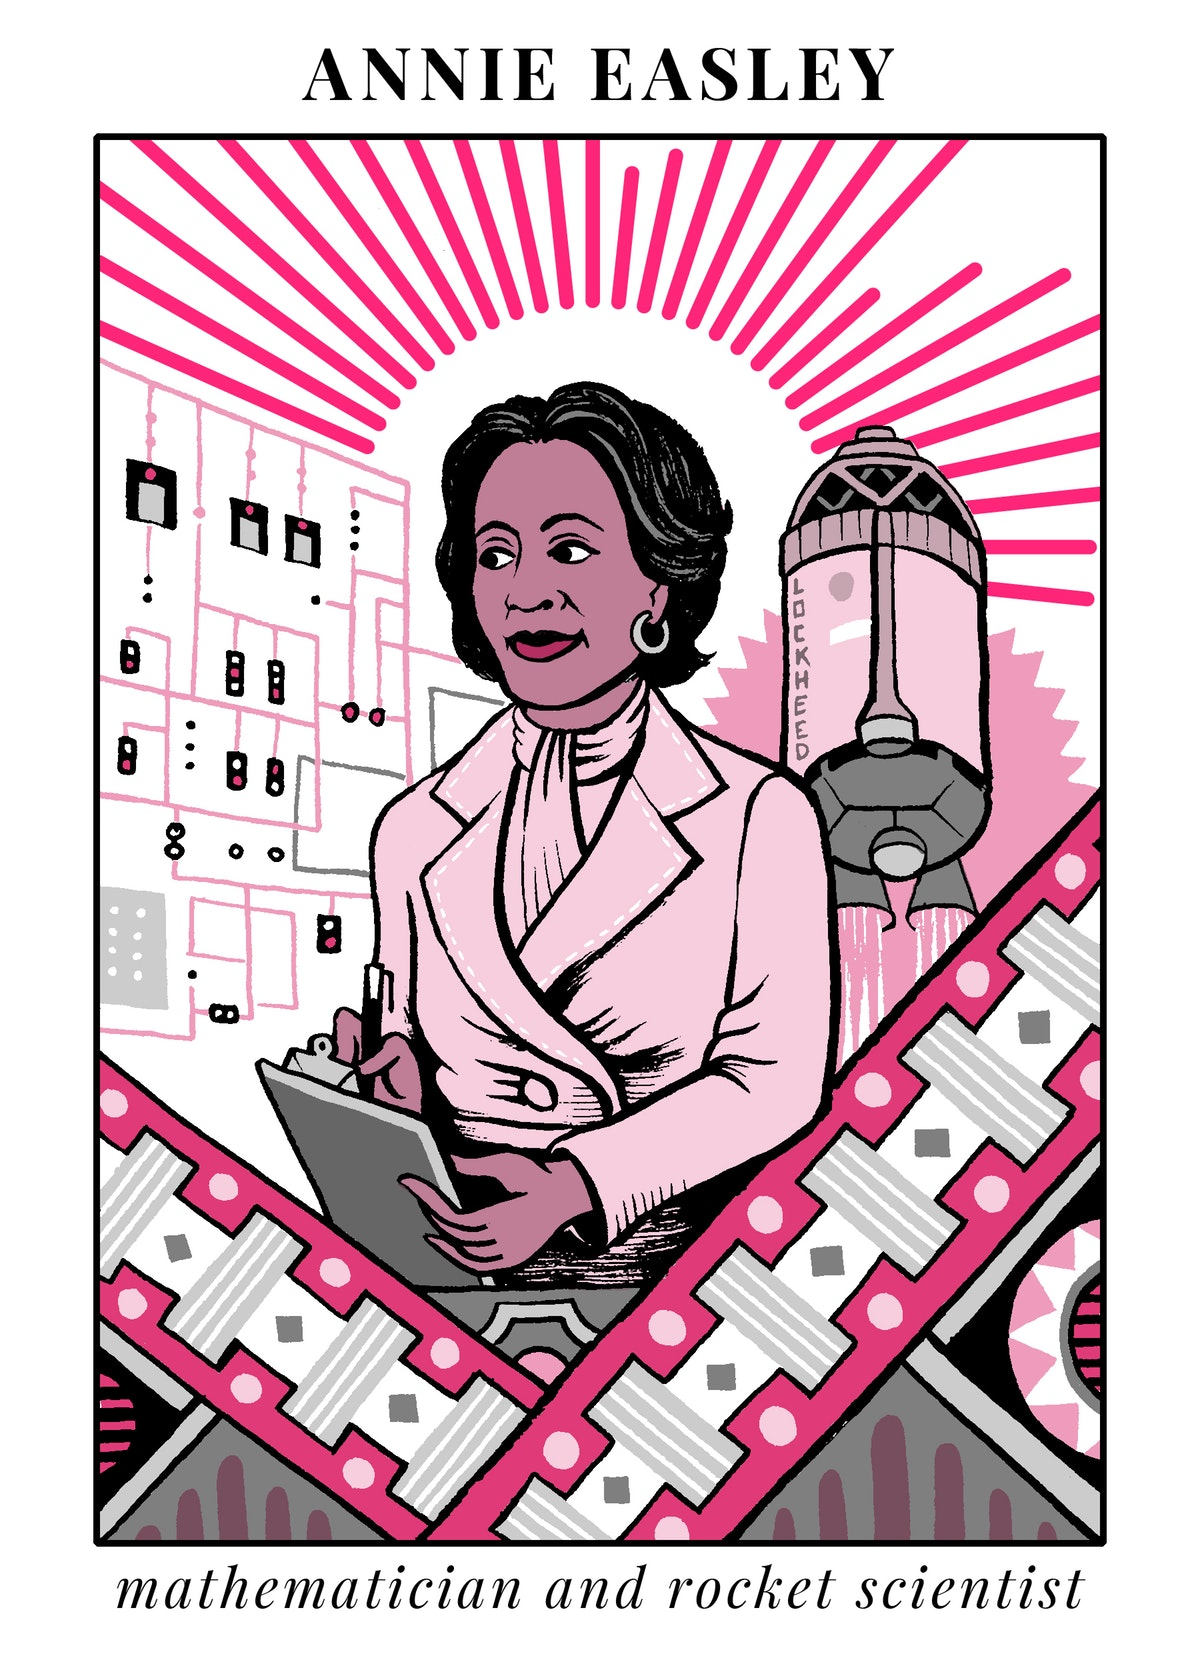 Annie Easley - Annie J. Easley was a female African-American computer scientist, mathematician, and rocket scientist. She worked for the Lewis Research Center of the National Aeronautics and Space Administration and its predecessor, the National Advisory Committee for Aeronautics. Read more about her here.